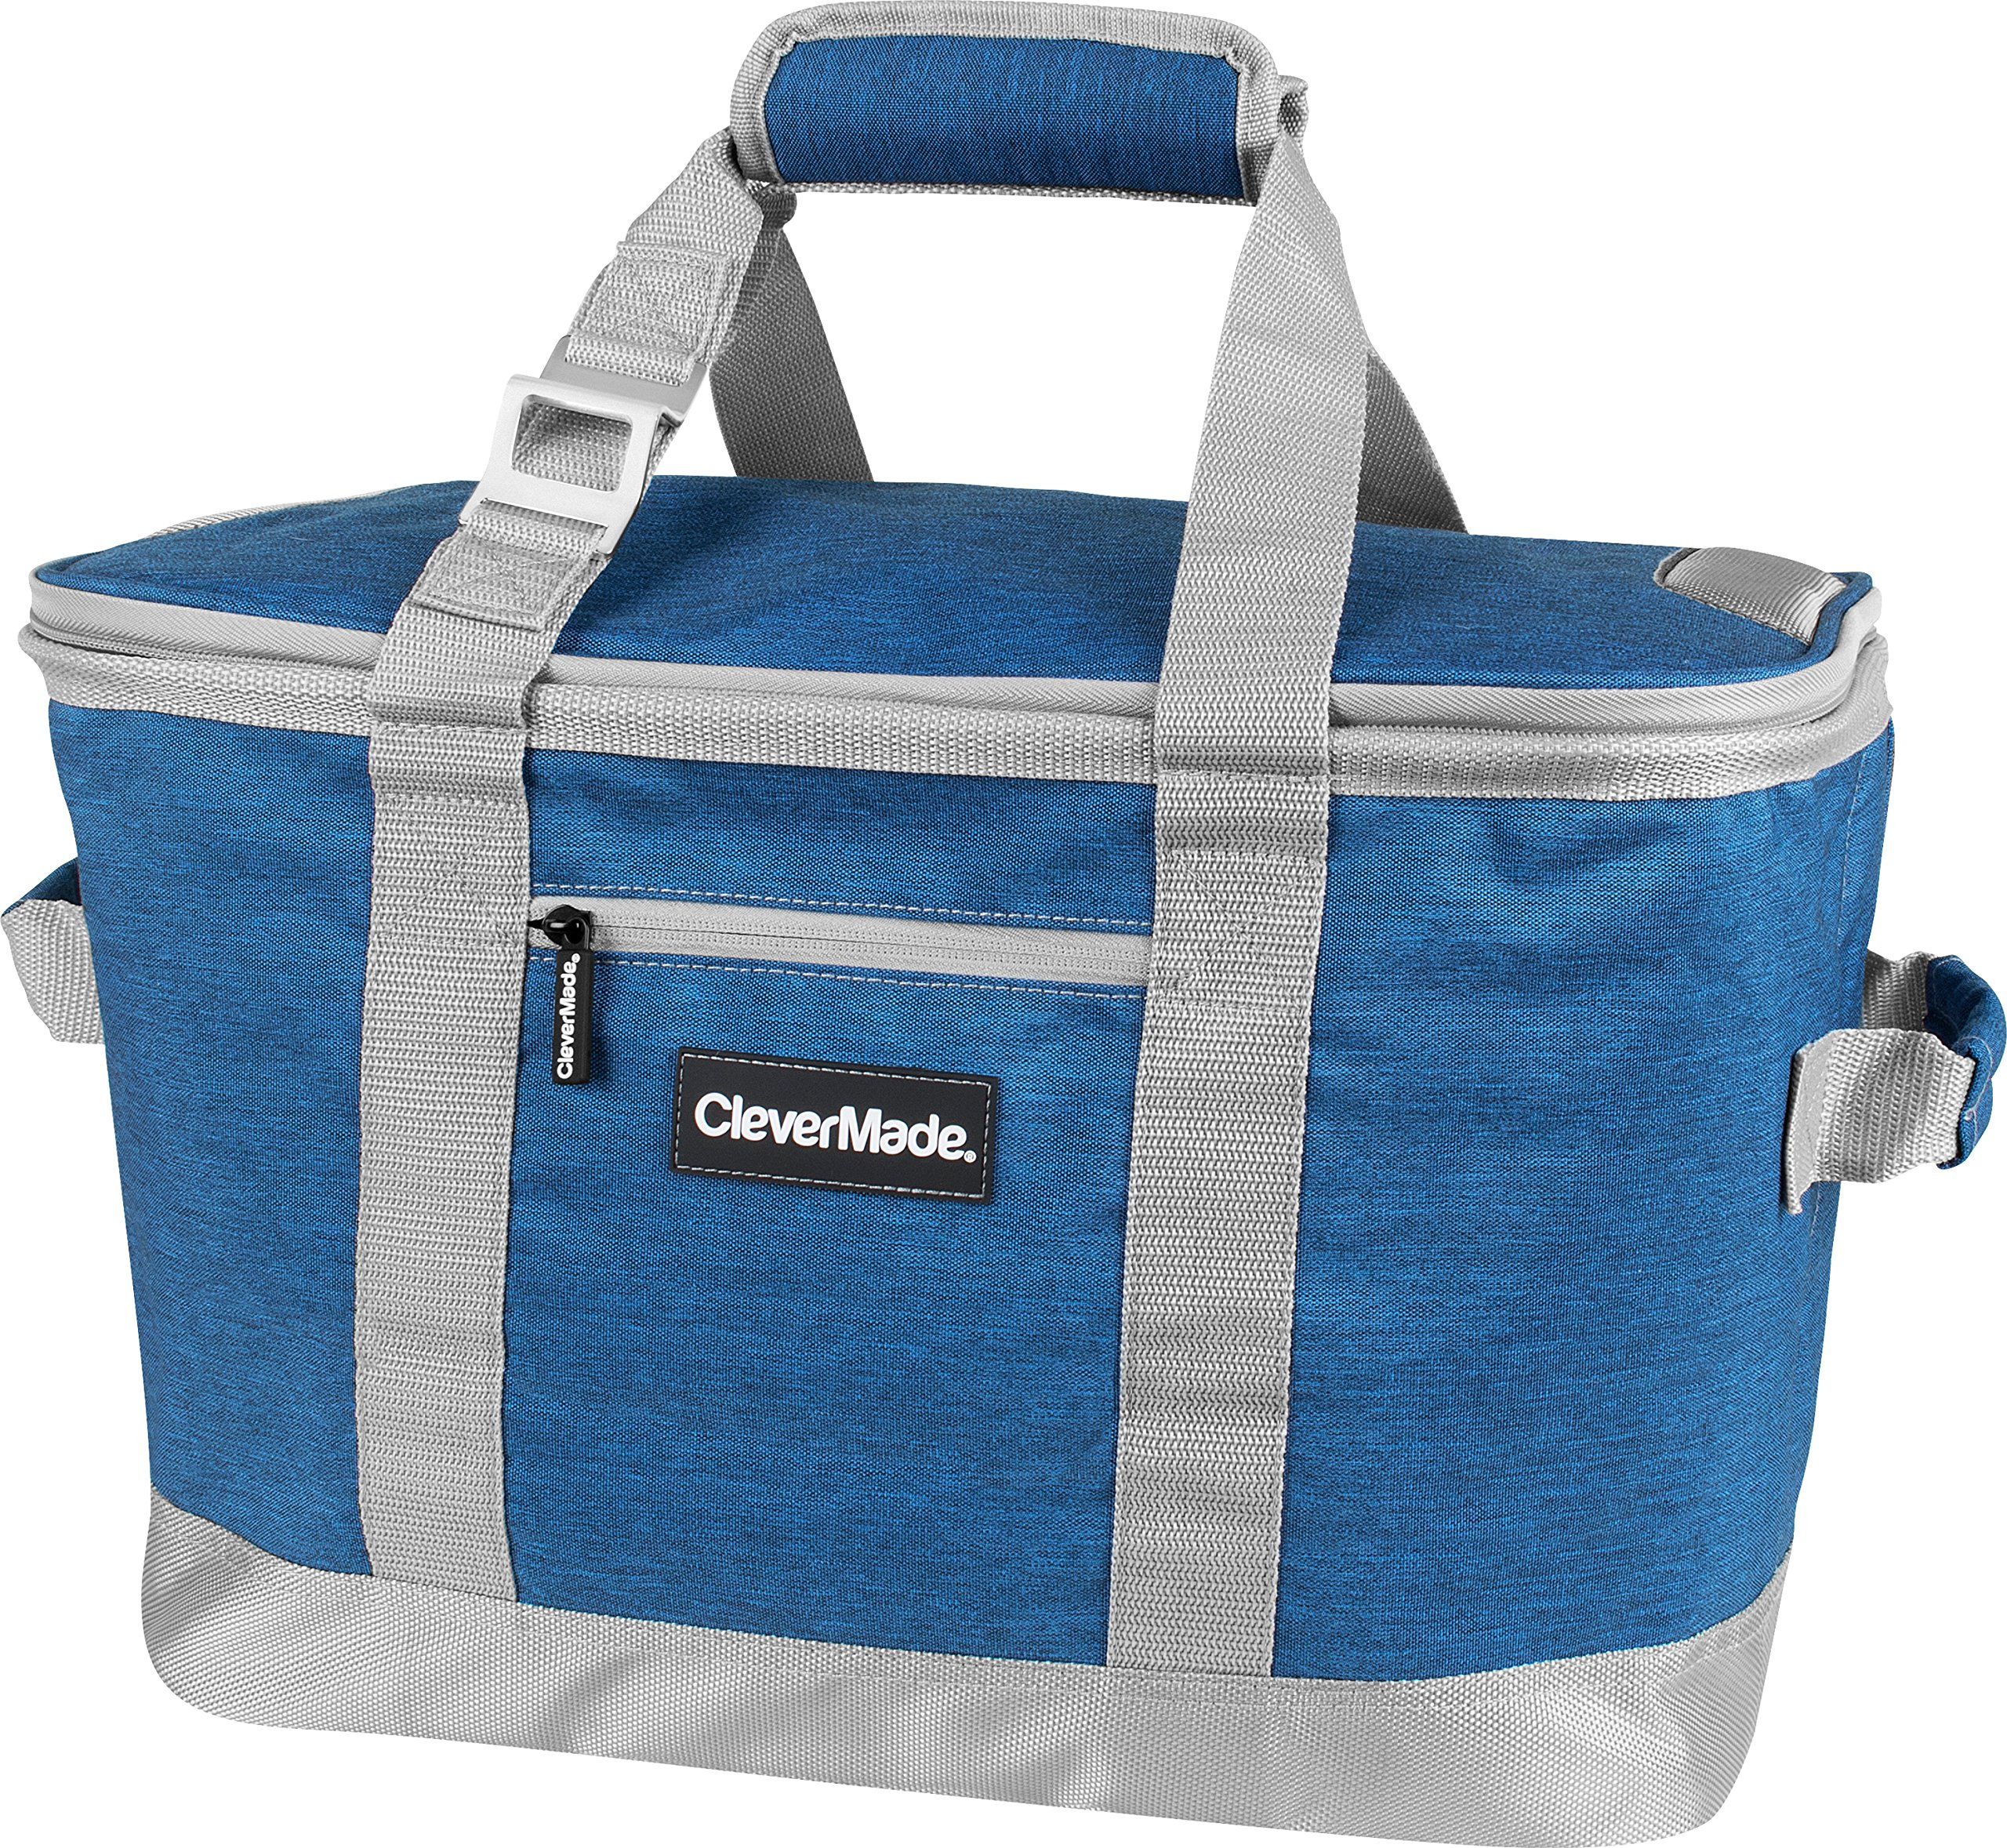 CleverMade Collapsible Cooler Bag: Insulated Leakproof 50 Can Soft Sided Portable Beverage Tote with Bottle Opener & Storage Pockets, Blue/Grey by CleverMade